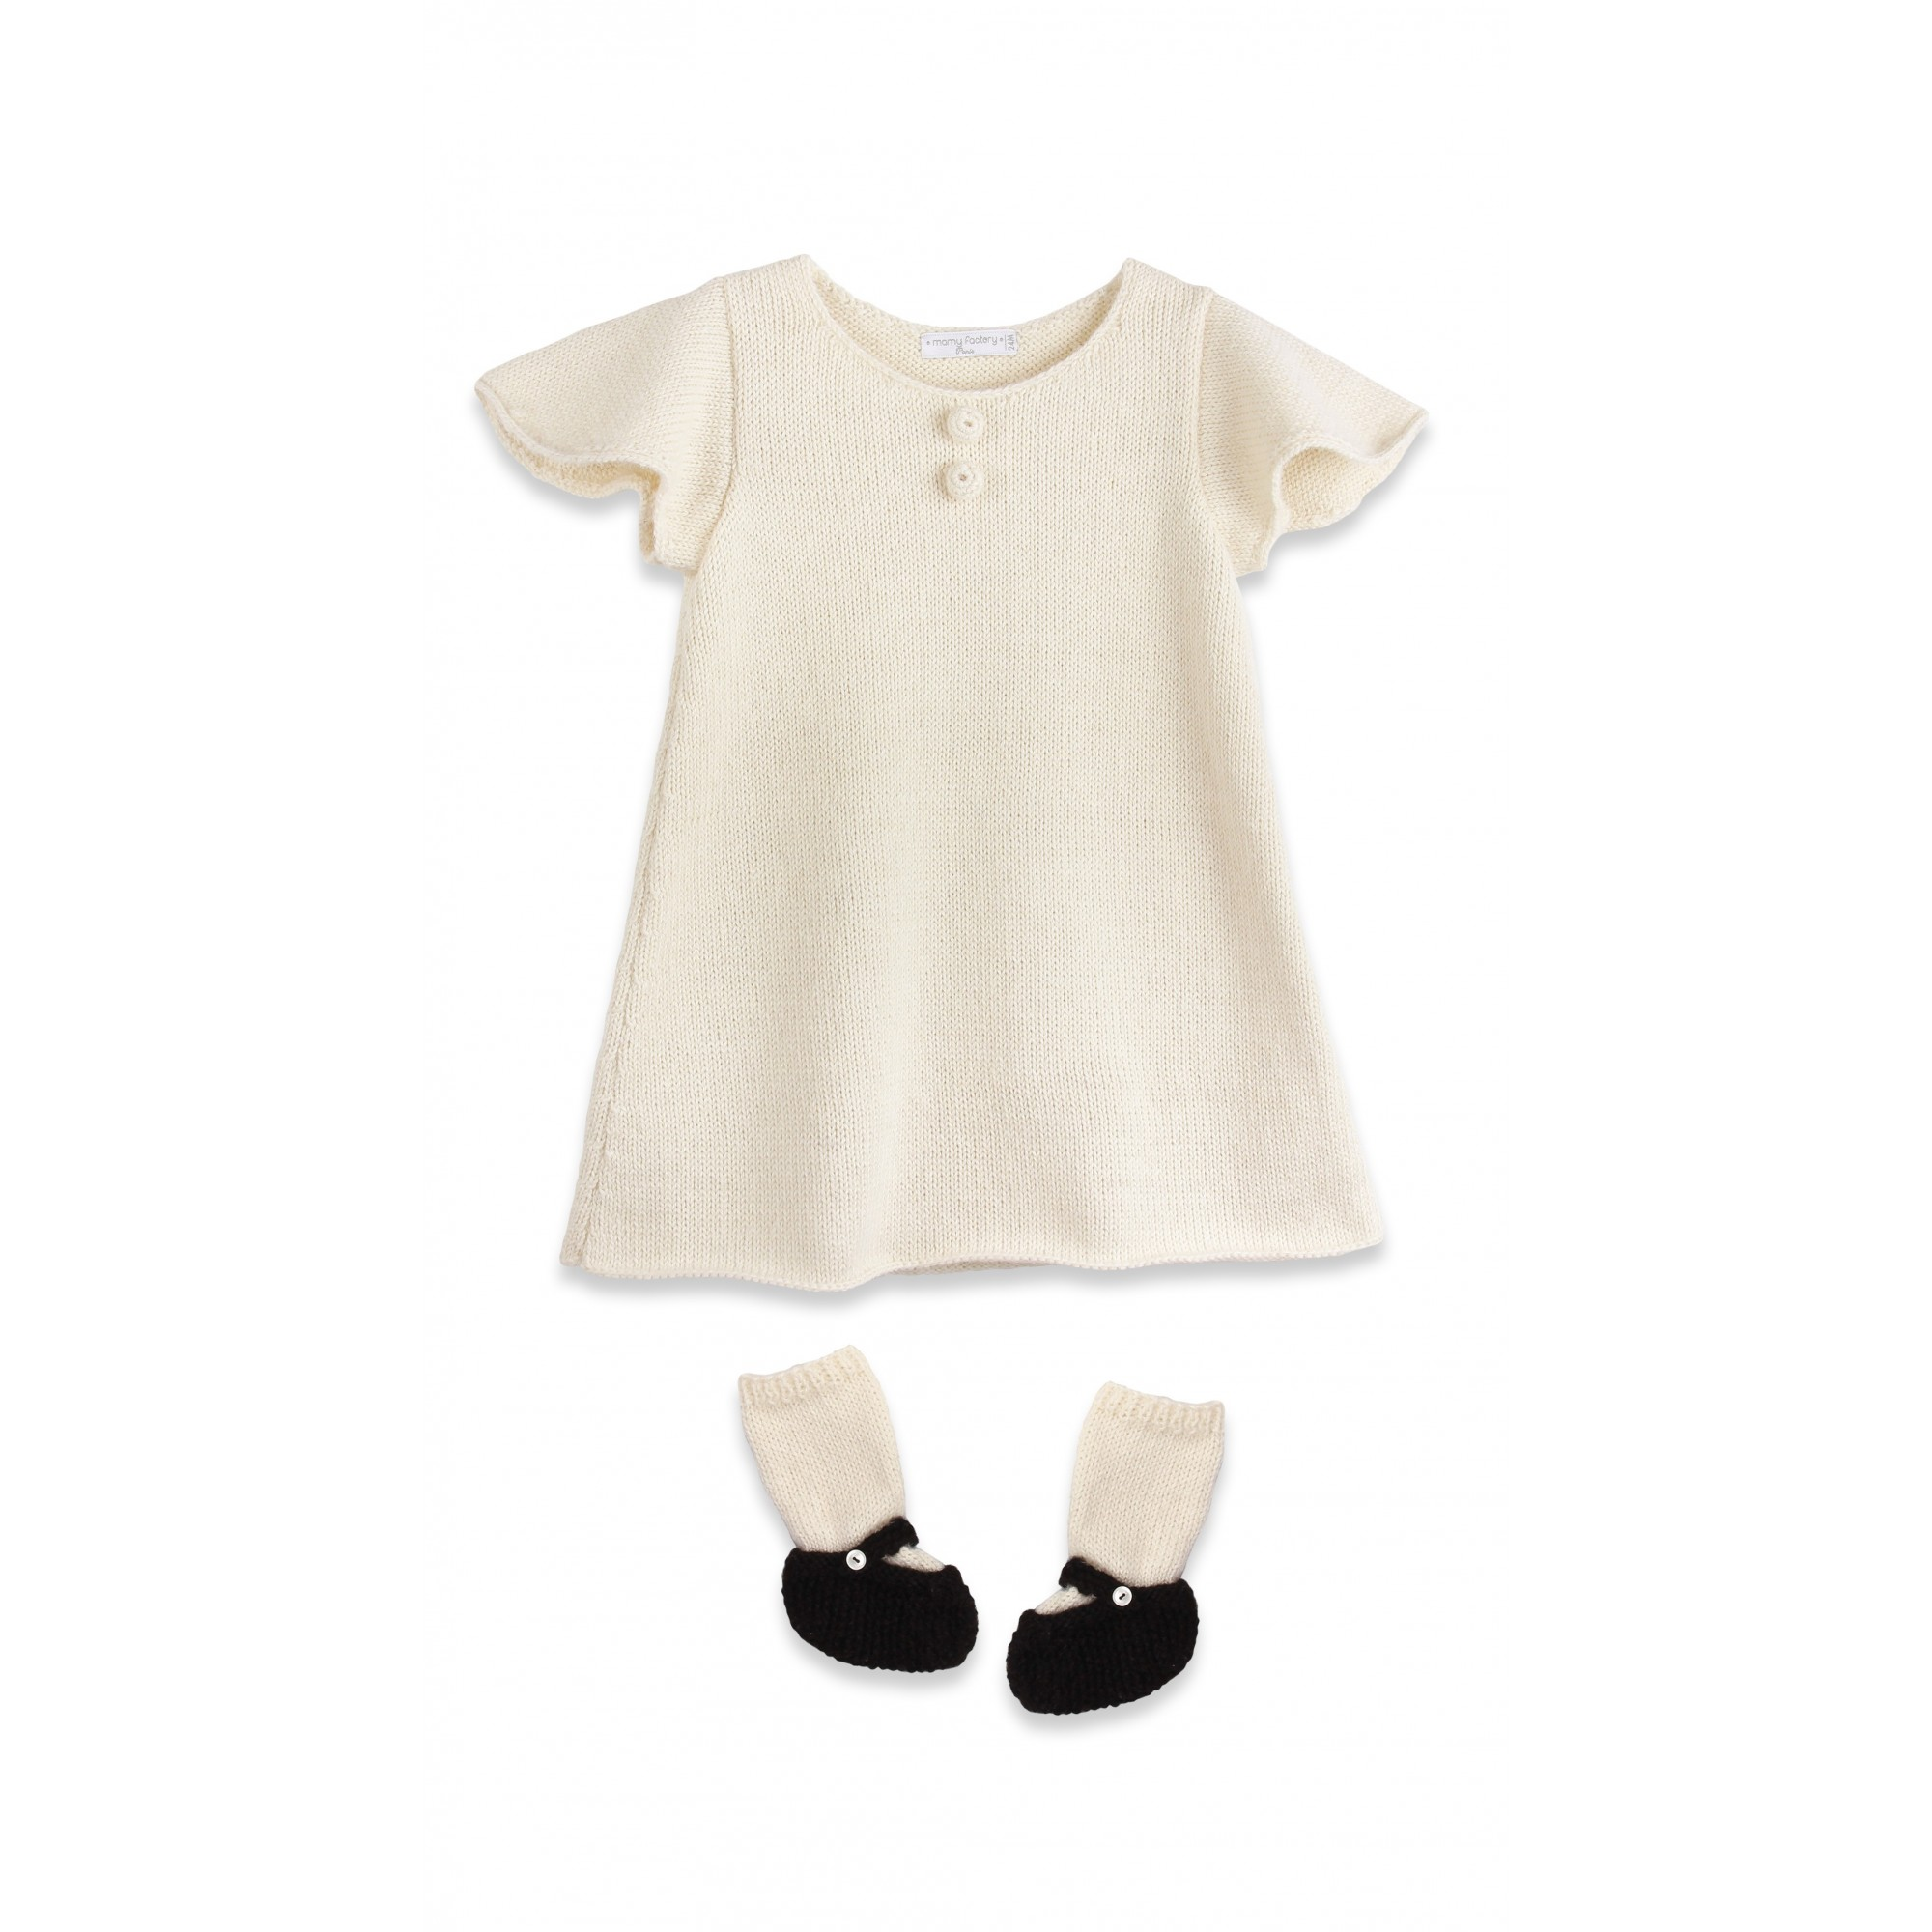 Baby Dress with short and butterfly shaped sleeves and ballerinas slippers made from 100% alpaca natural white